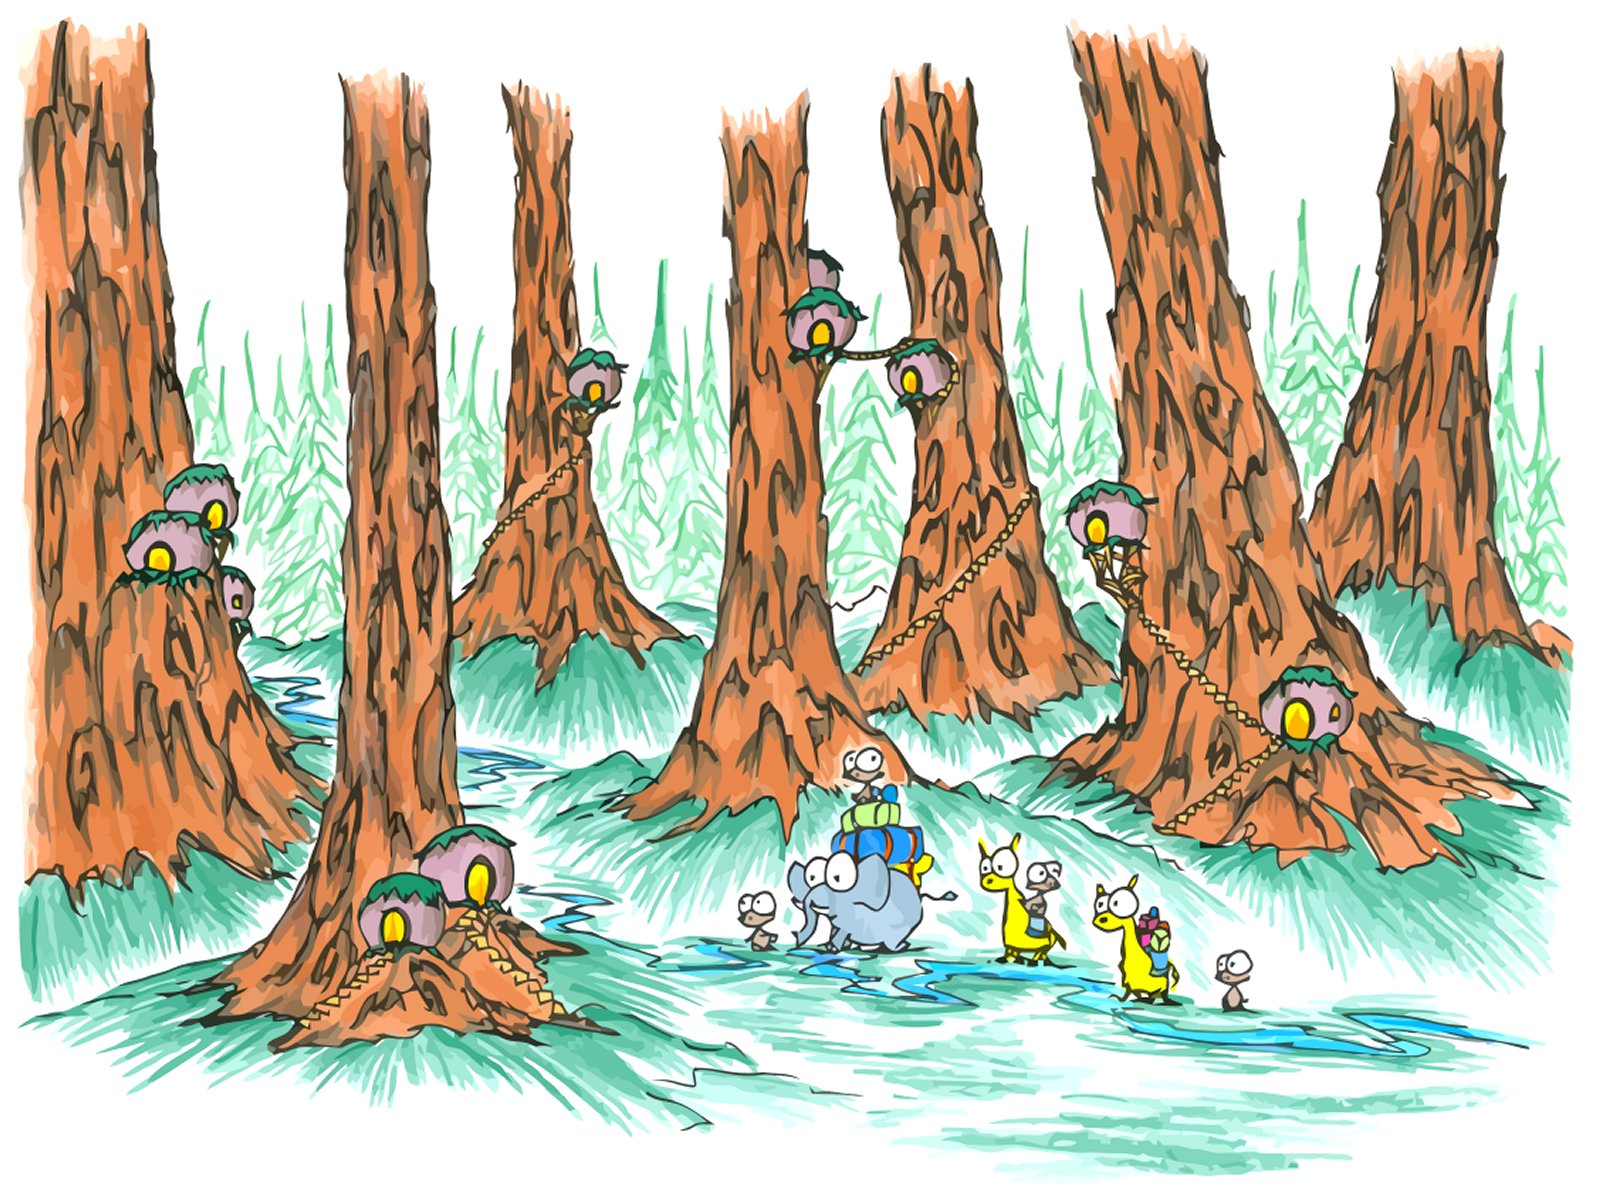 1600x1200 Screen Background Monkeys In A Giant Redwood Forest With Some Odd